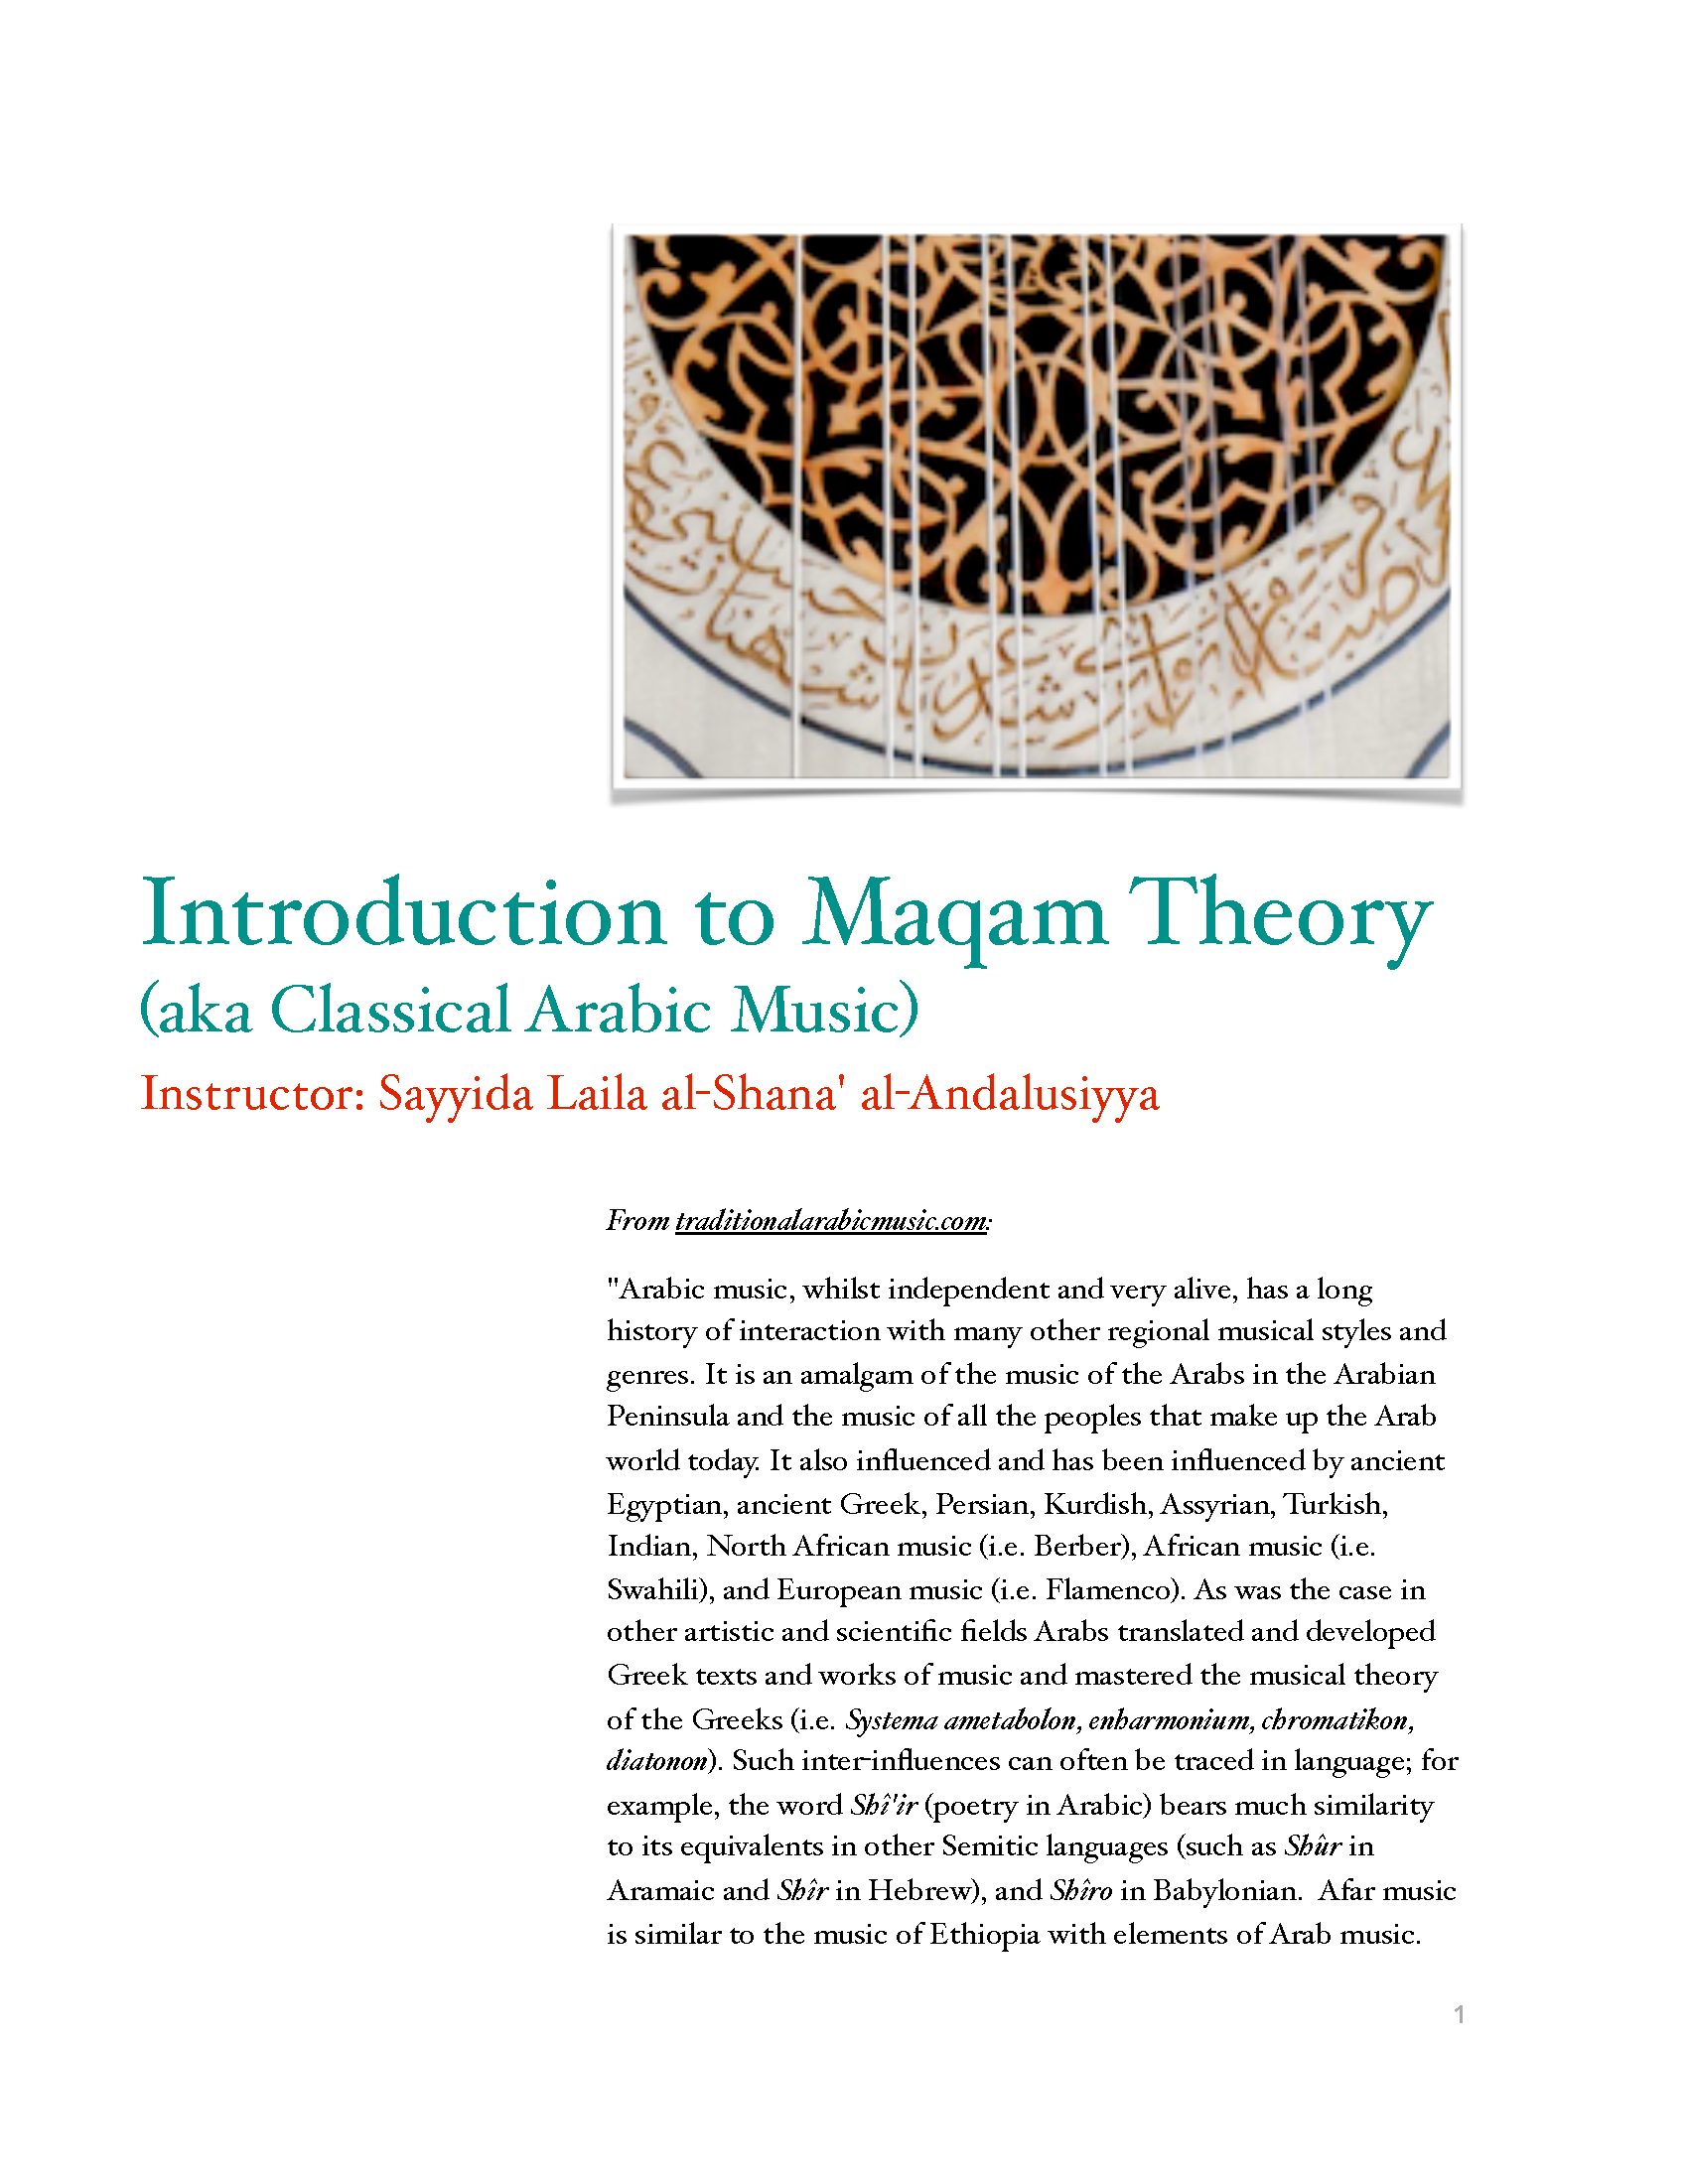 Introduction to Maqam Theory_Page_01.png